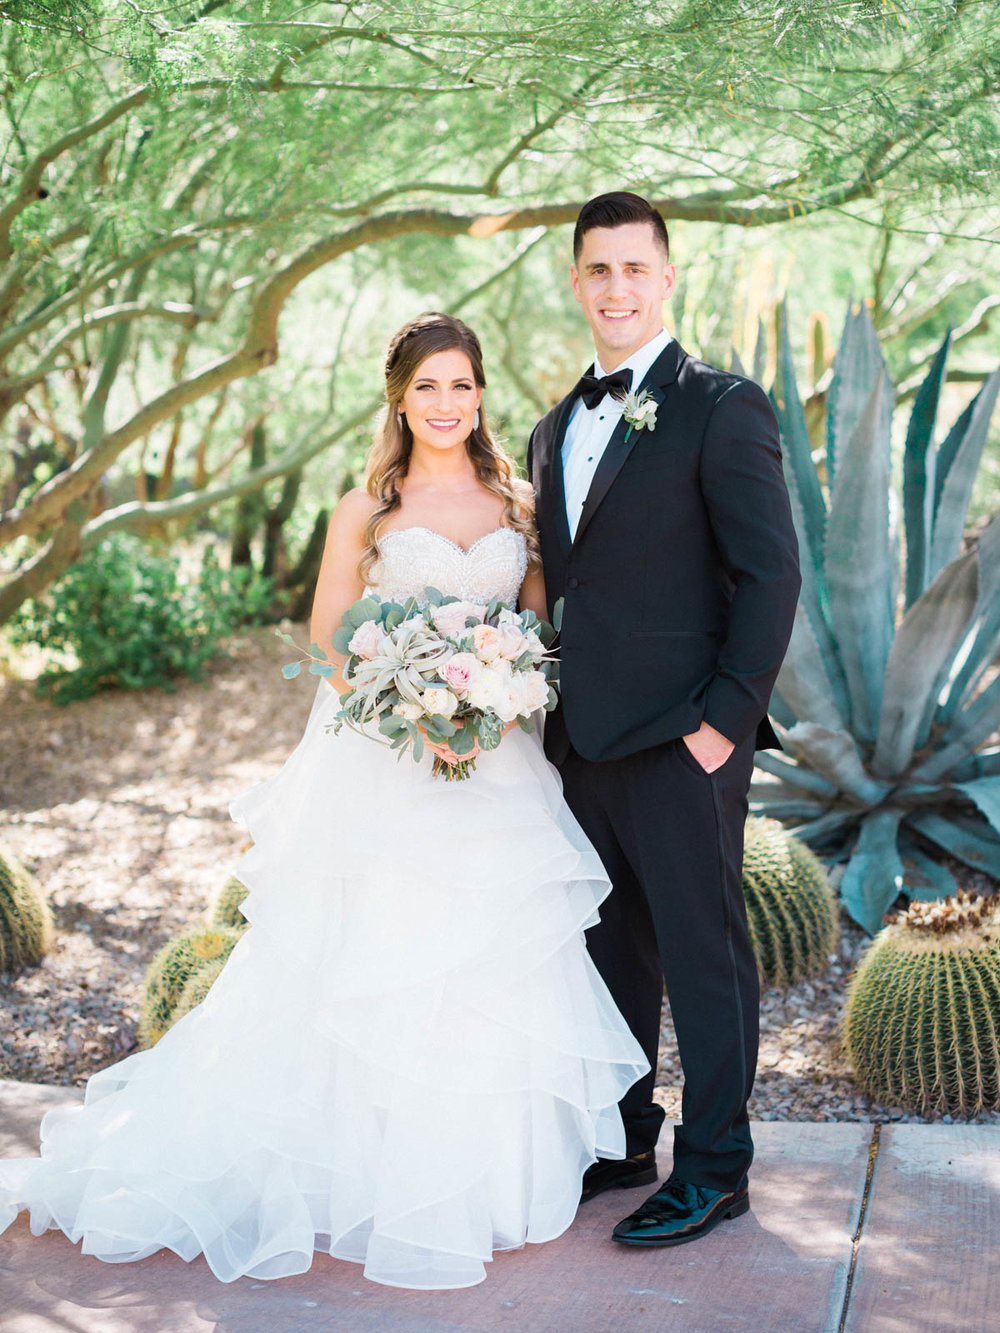 Mike & Jamie's beautiful wedding day captured by Tucson Wedding Photographers Betsy & John